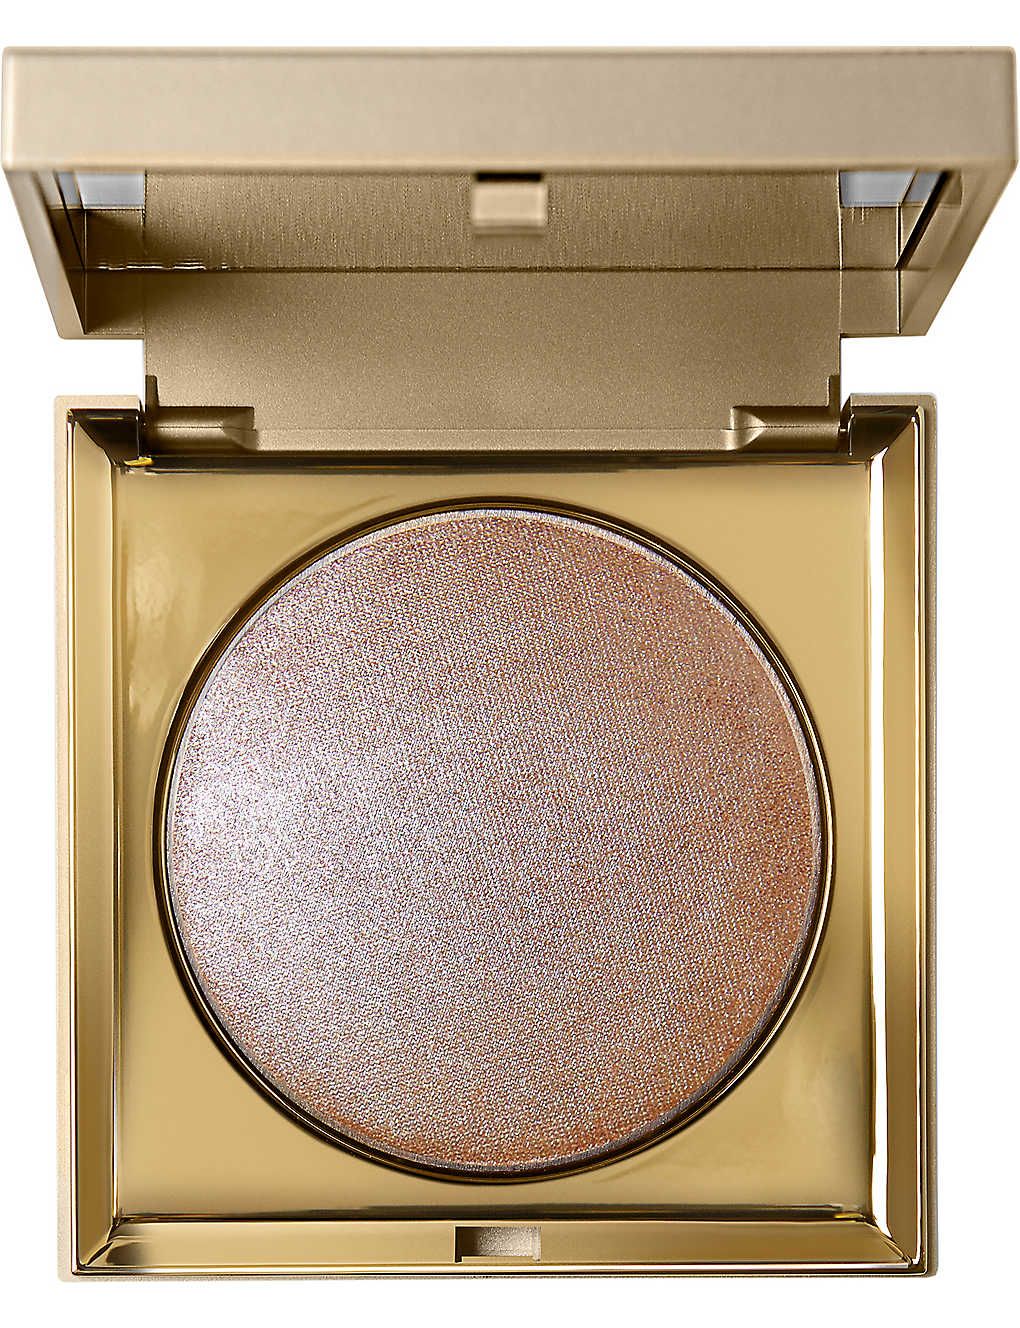 STILA: Heaven's Hue highlighter